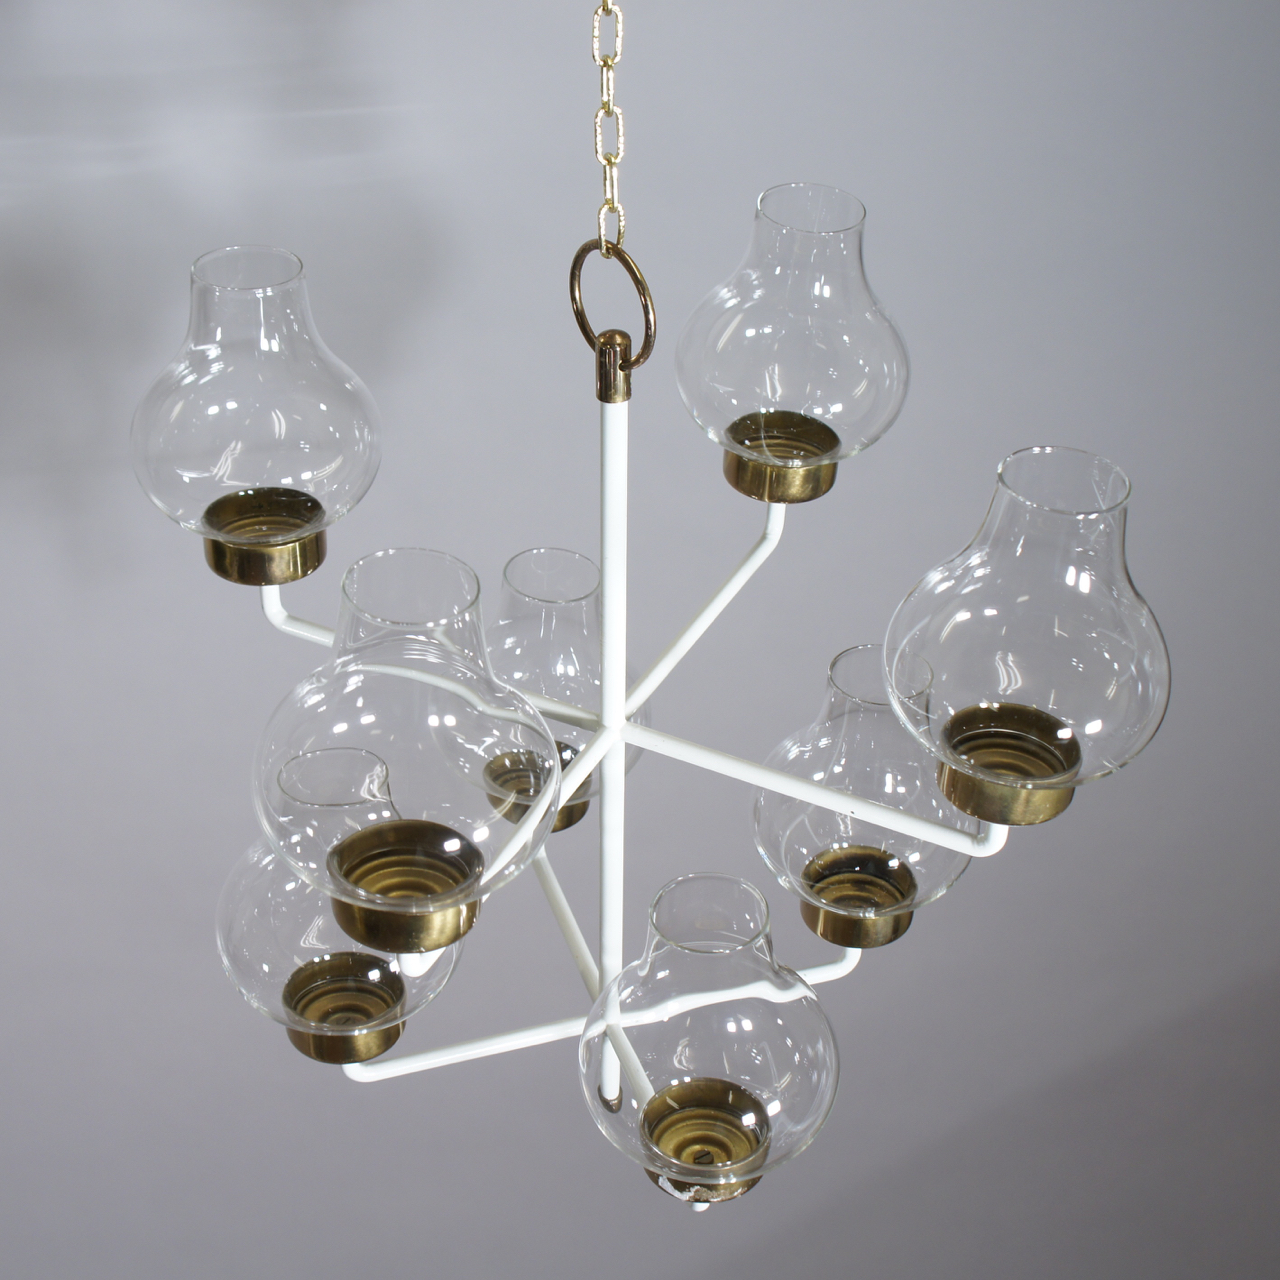 Ceiling chandelier by Anders Pehrson Ateljé Lyktan Sold